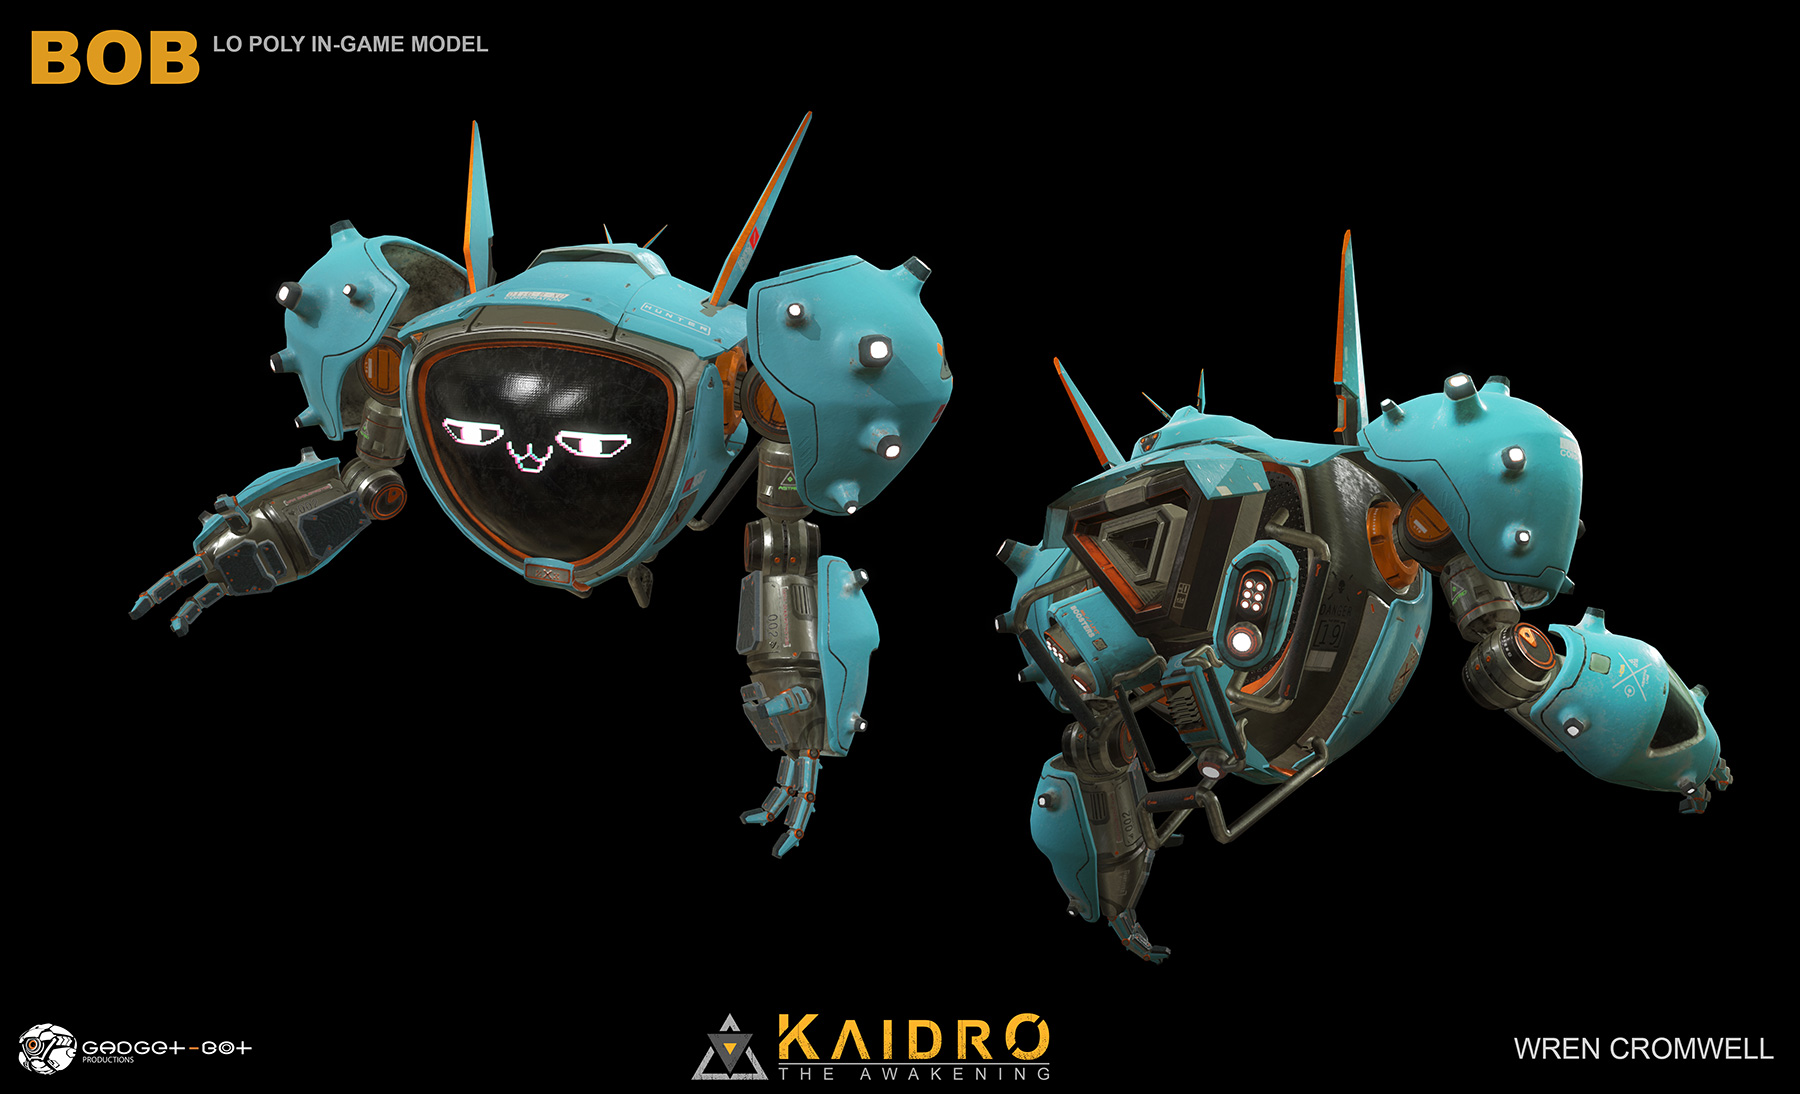 KAIDRO: The Awakening a VR Game Demo by Gadget-Bot Productions